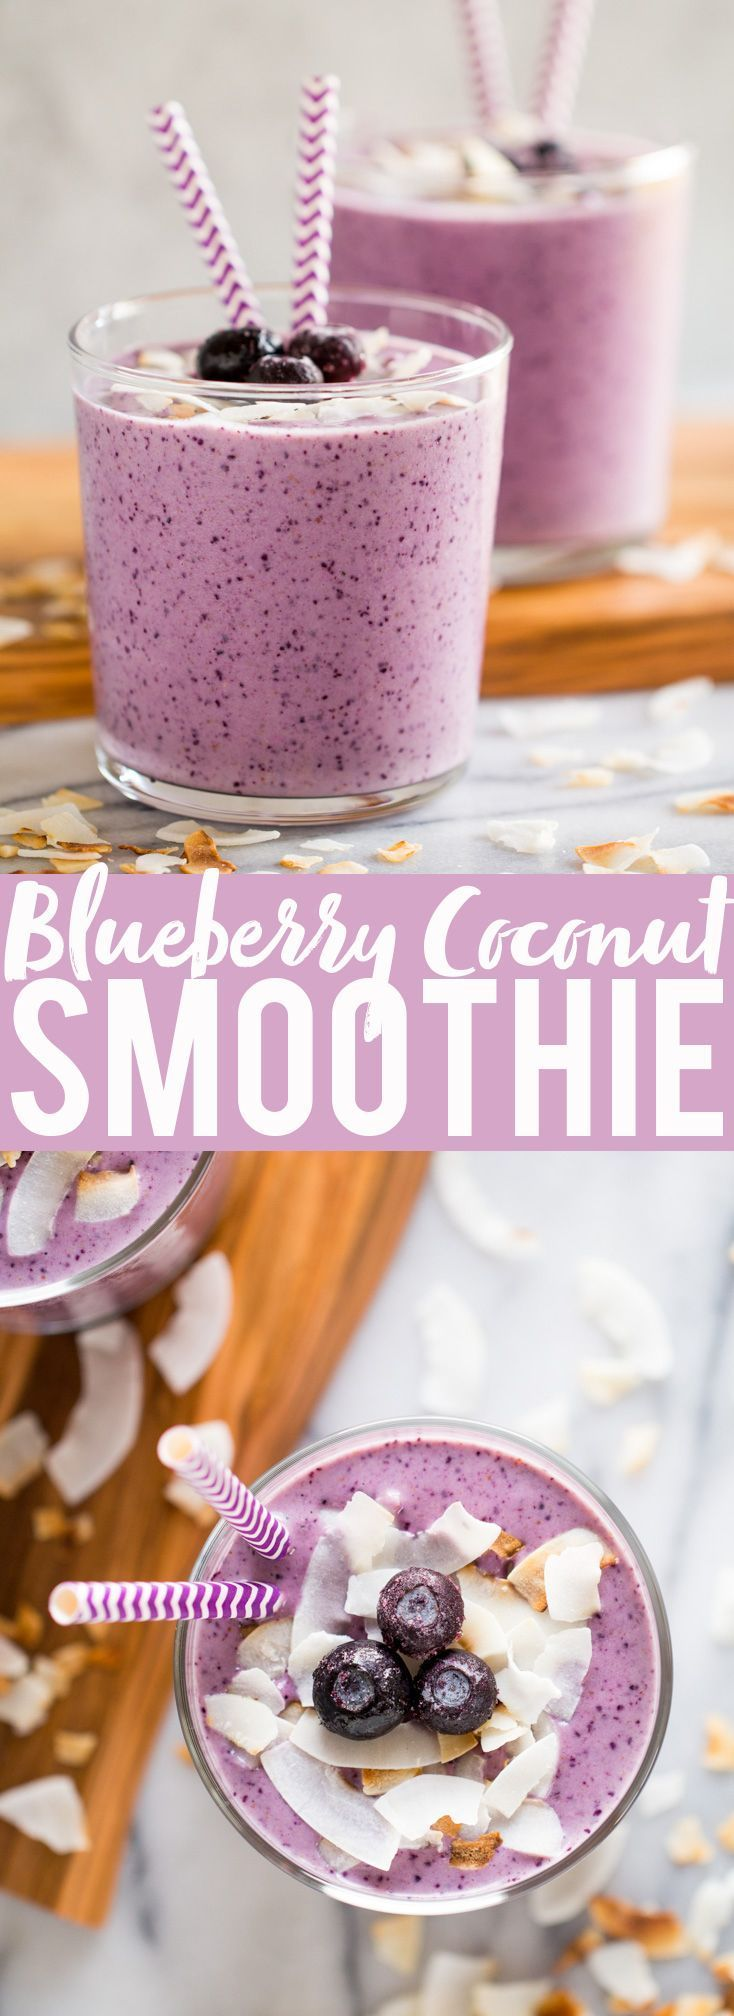 Blueberry Banana Coconut Smoothie | Smoothie recipes | Blueberry Smoothie | Coconut milk smoothie | Almond butter in smoothies | Breakfast Smoothie  See more http://recipesheaven.com/paleo